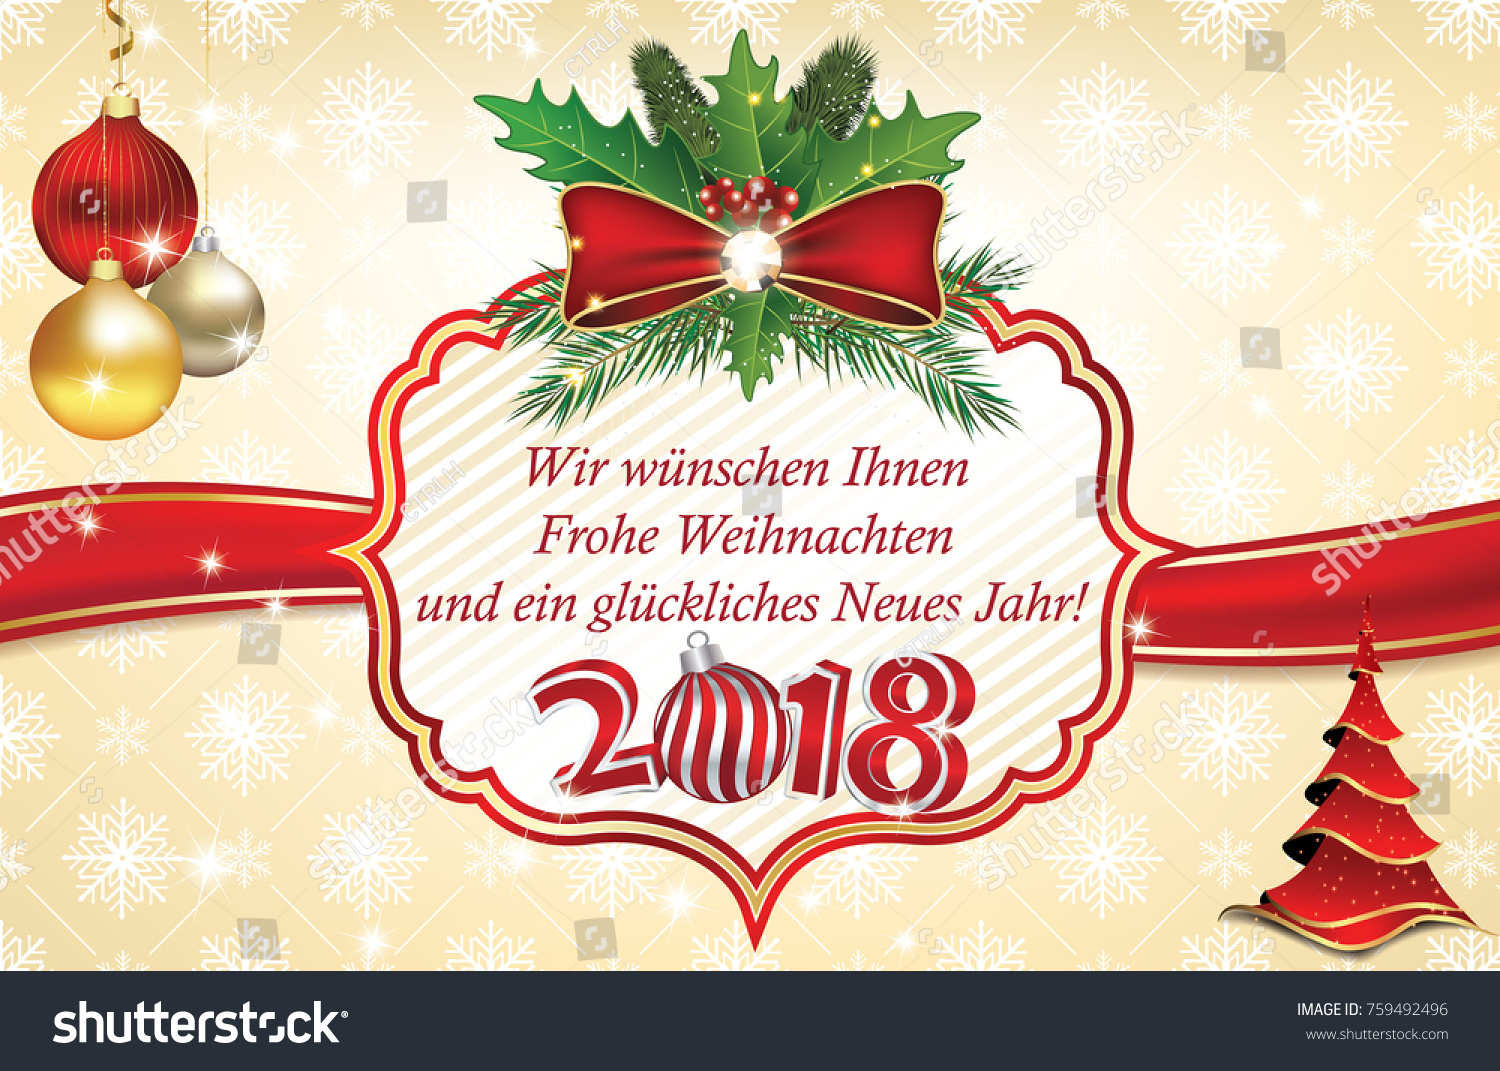 2018 christmas new year greeting card stock illustration royalty 2018 christmas new year greeting card designed for the german speaking clients text translation m4hsunfo